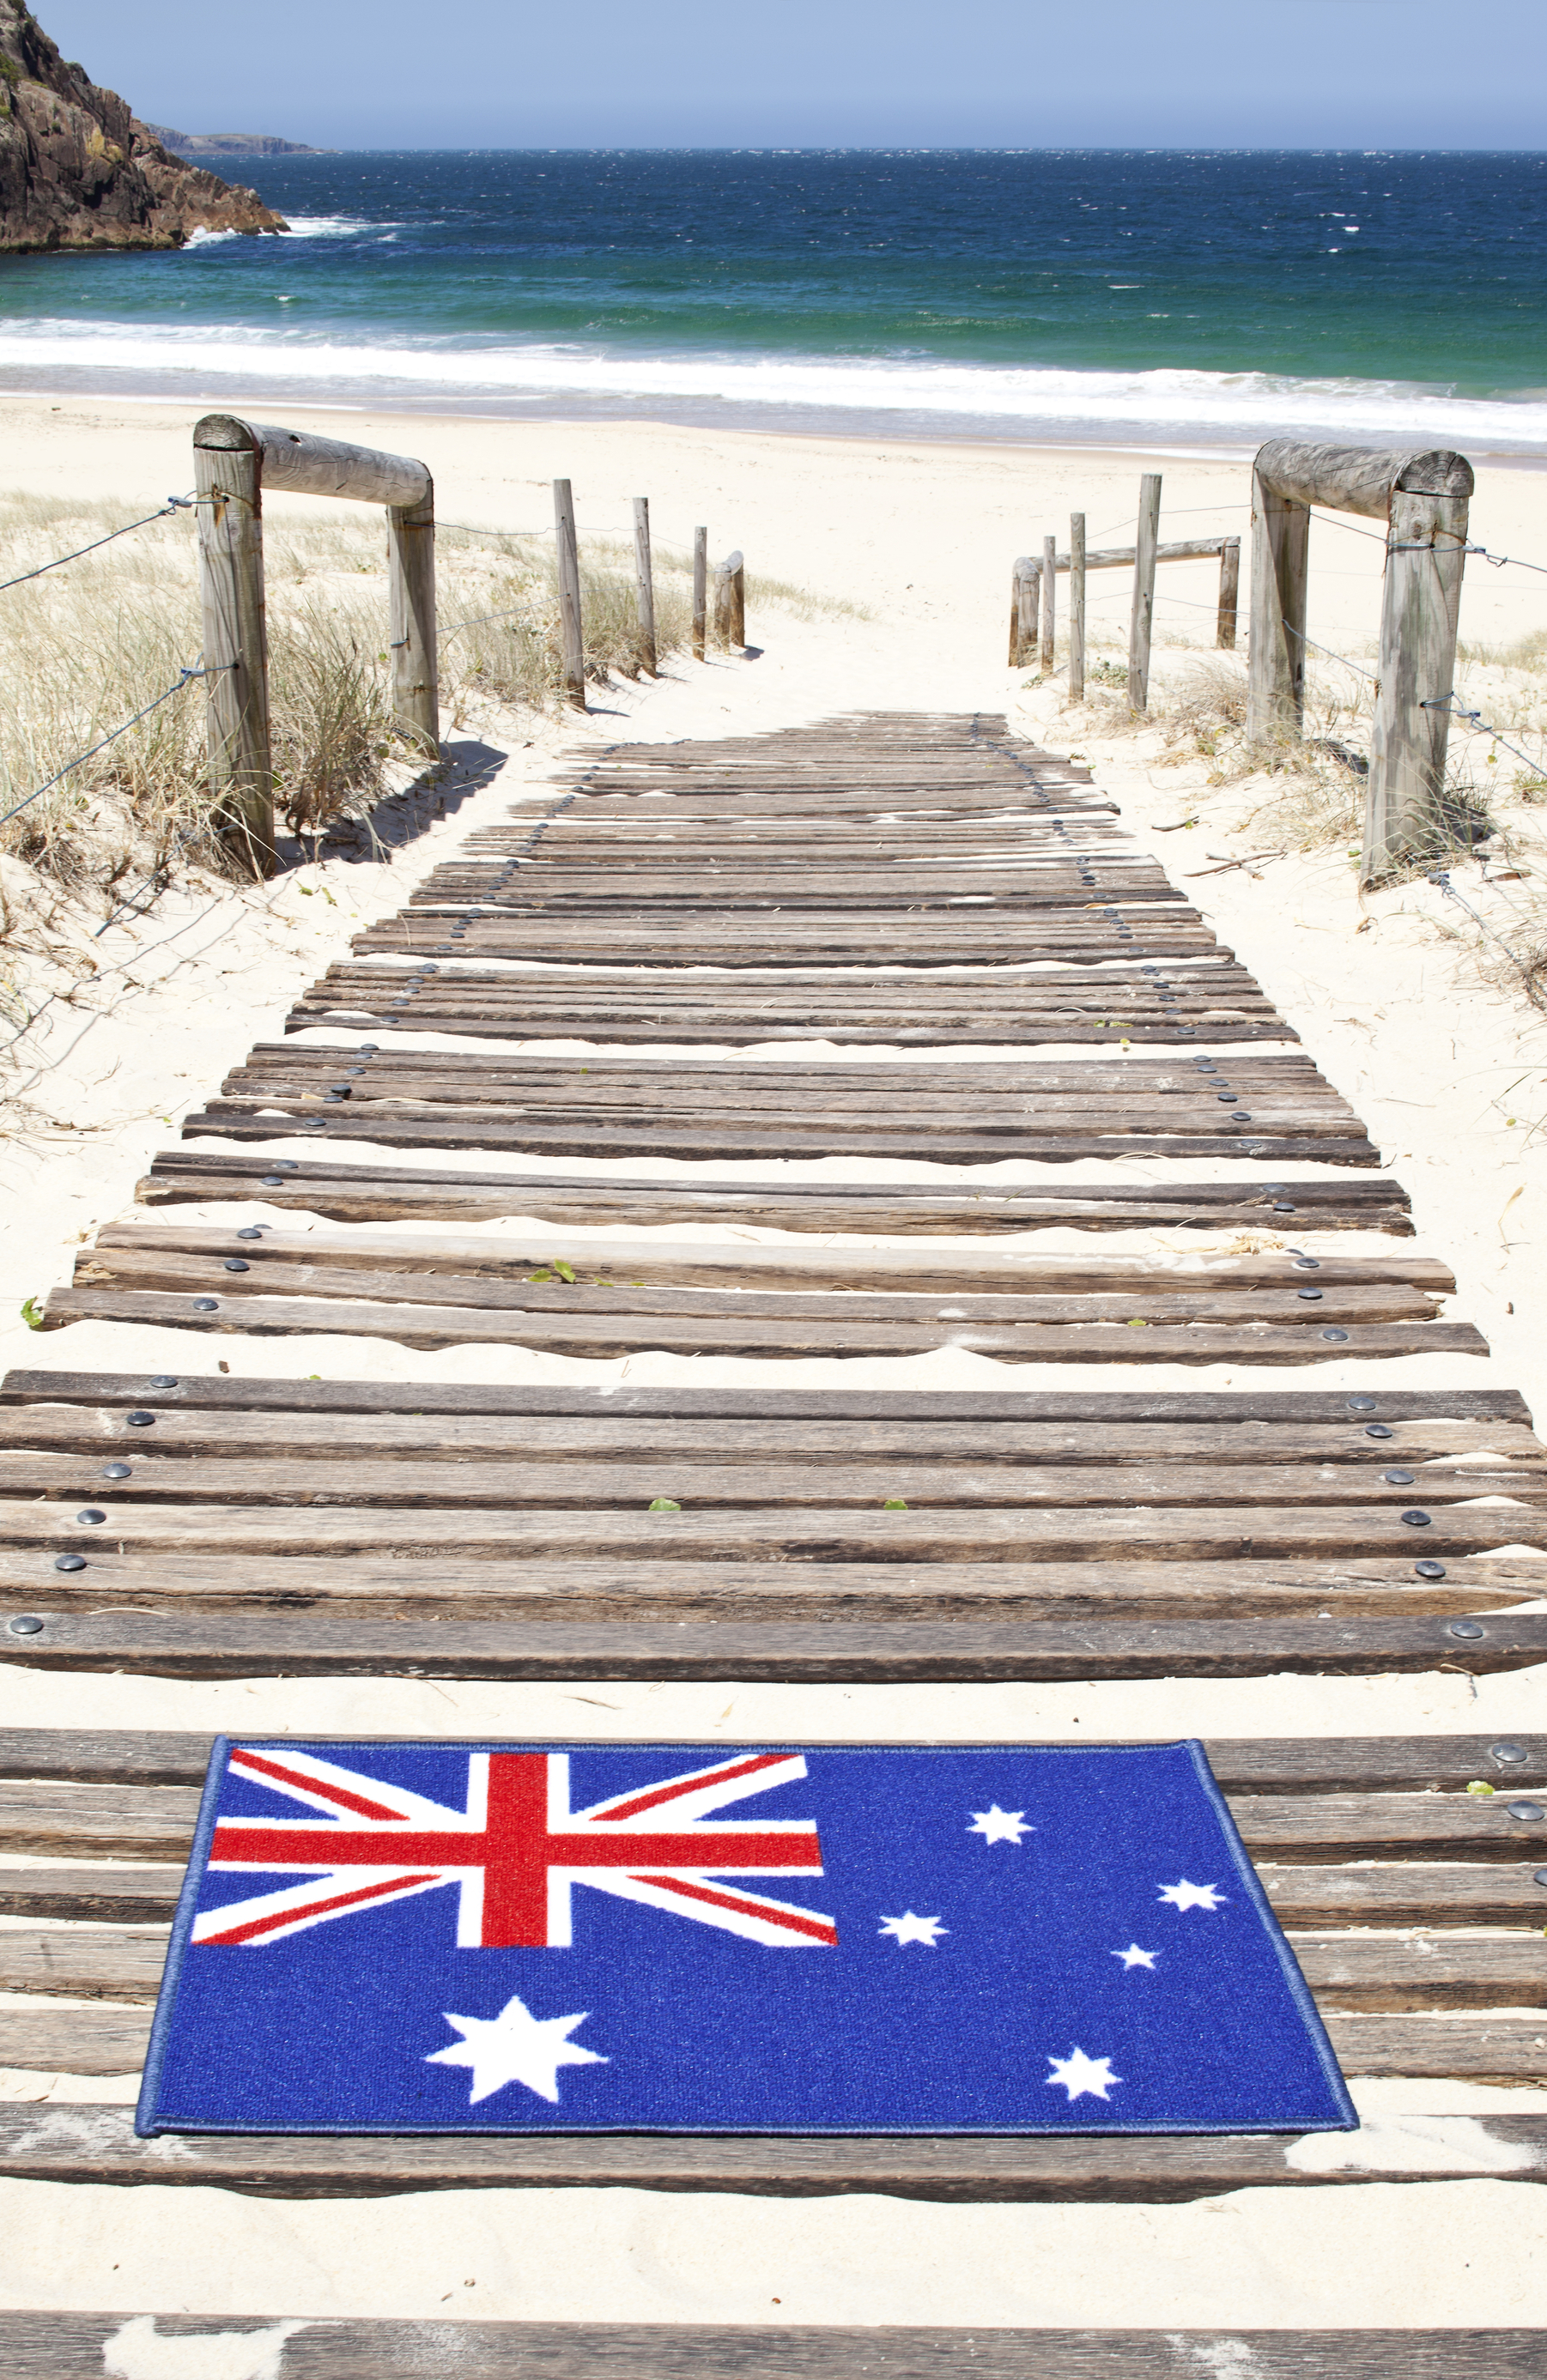 Australian flag wlecome doormat at the beach.